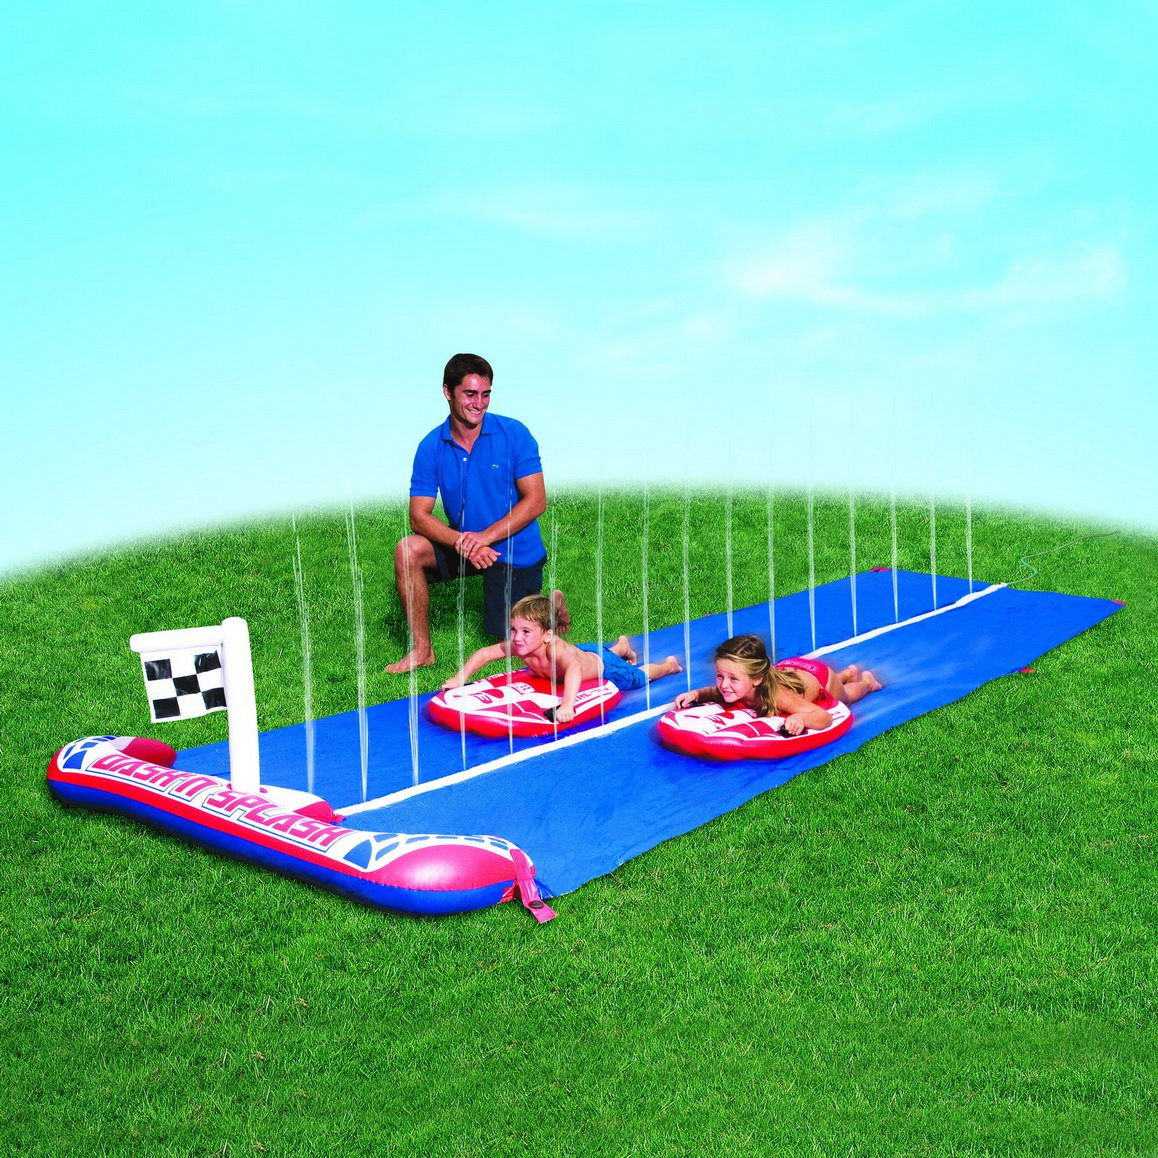 toboggan d 39 eau piscine pour enfant et piste de course jeux. Black Bedroom Furniture Sets. Home Design Ideas